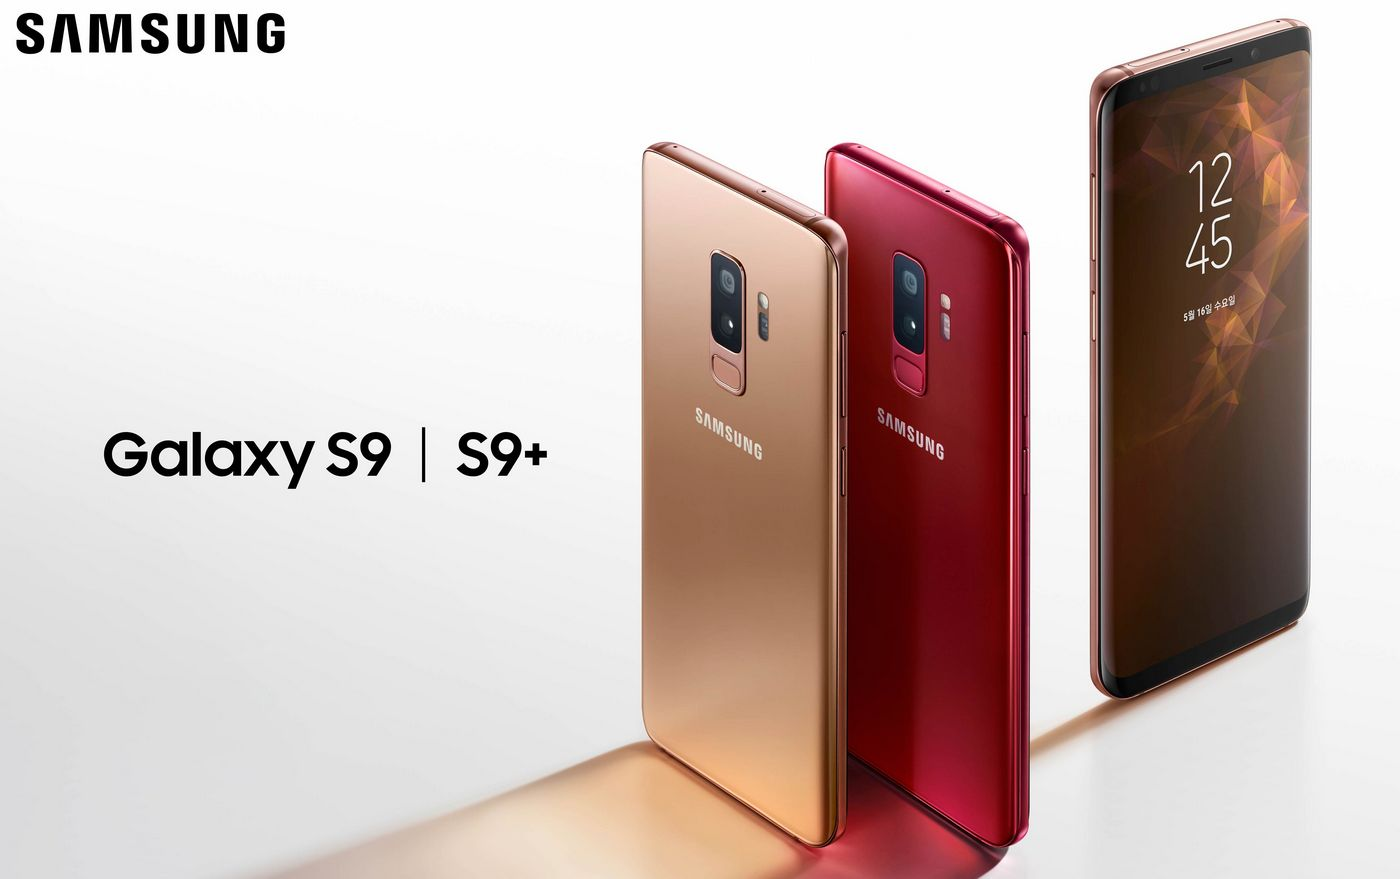 Samsung Galaxy S9 and S9+ get new Sunrise Gold and Burgundy Red color options -